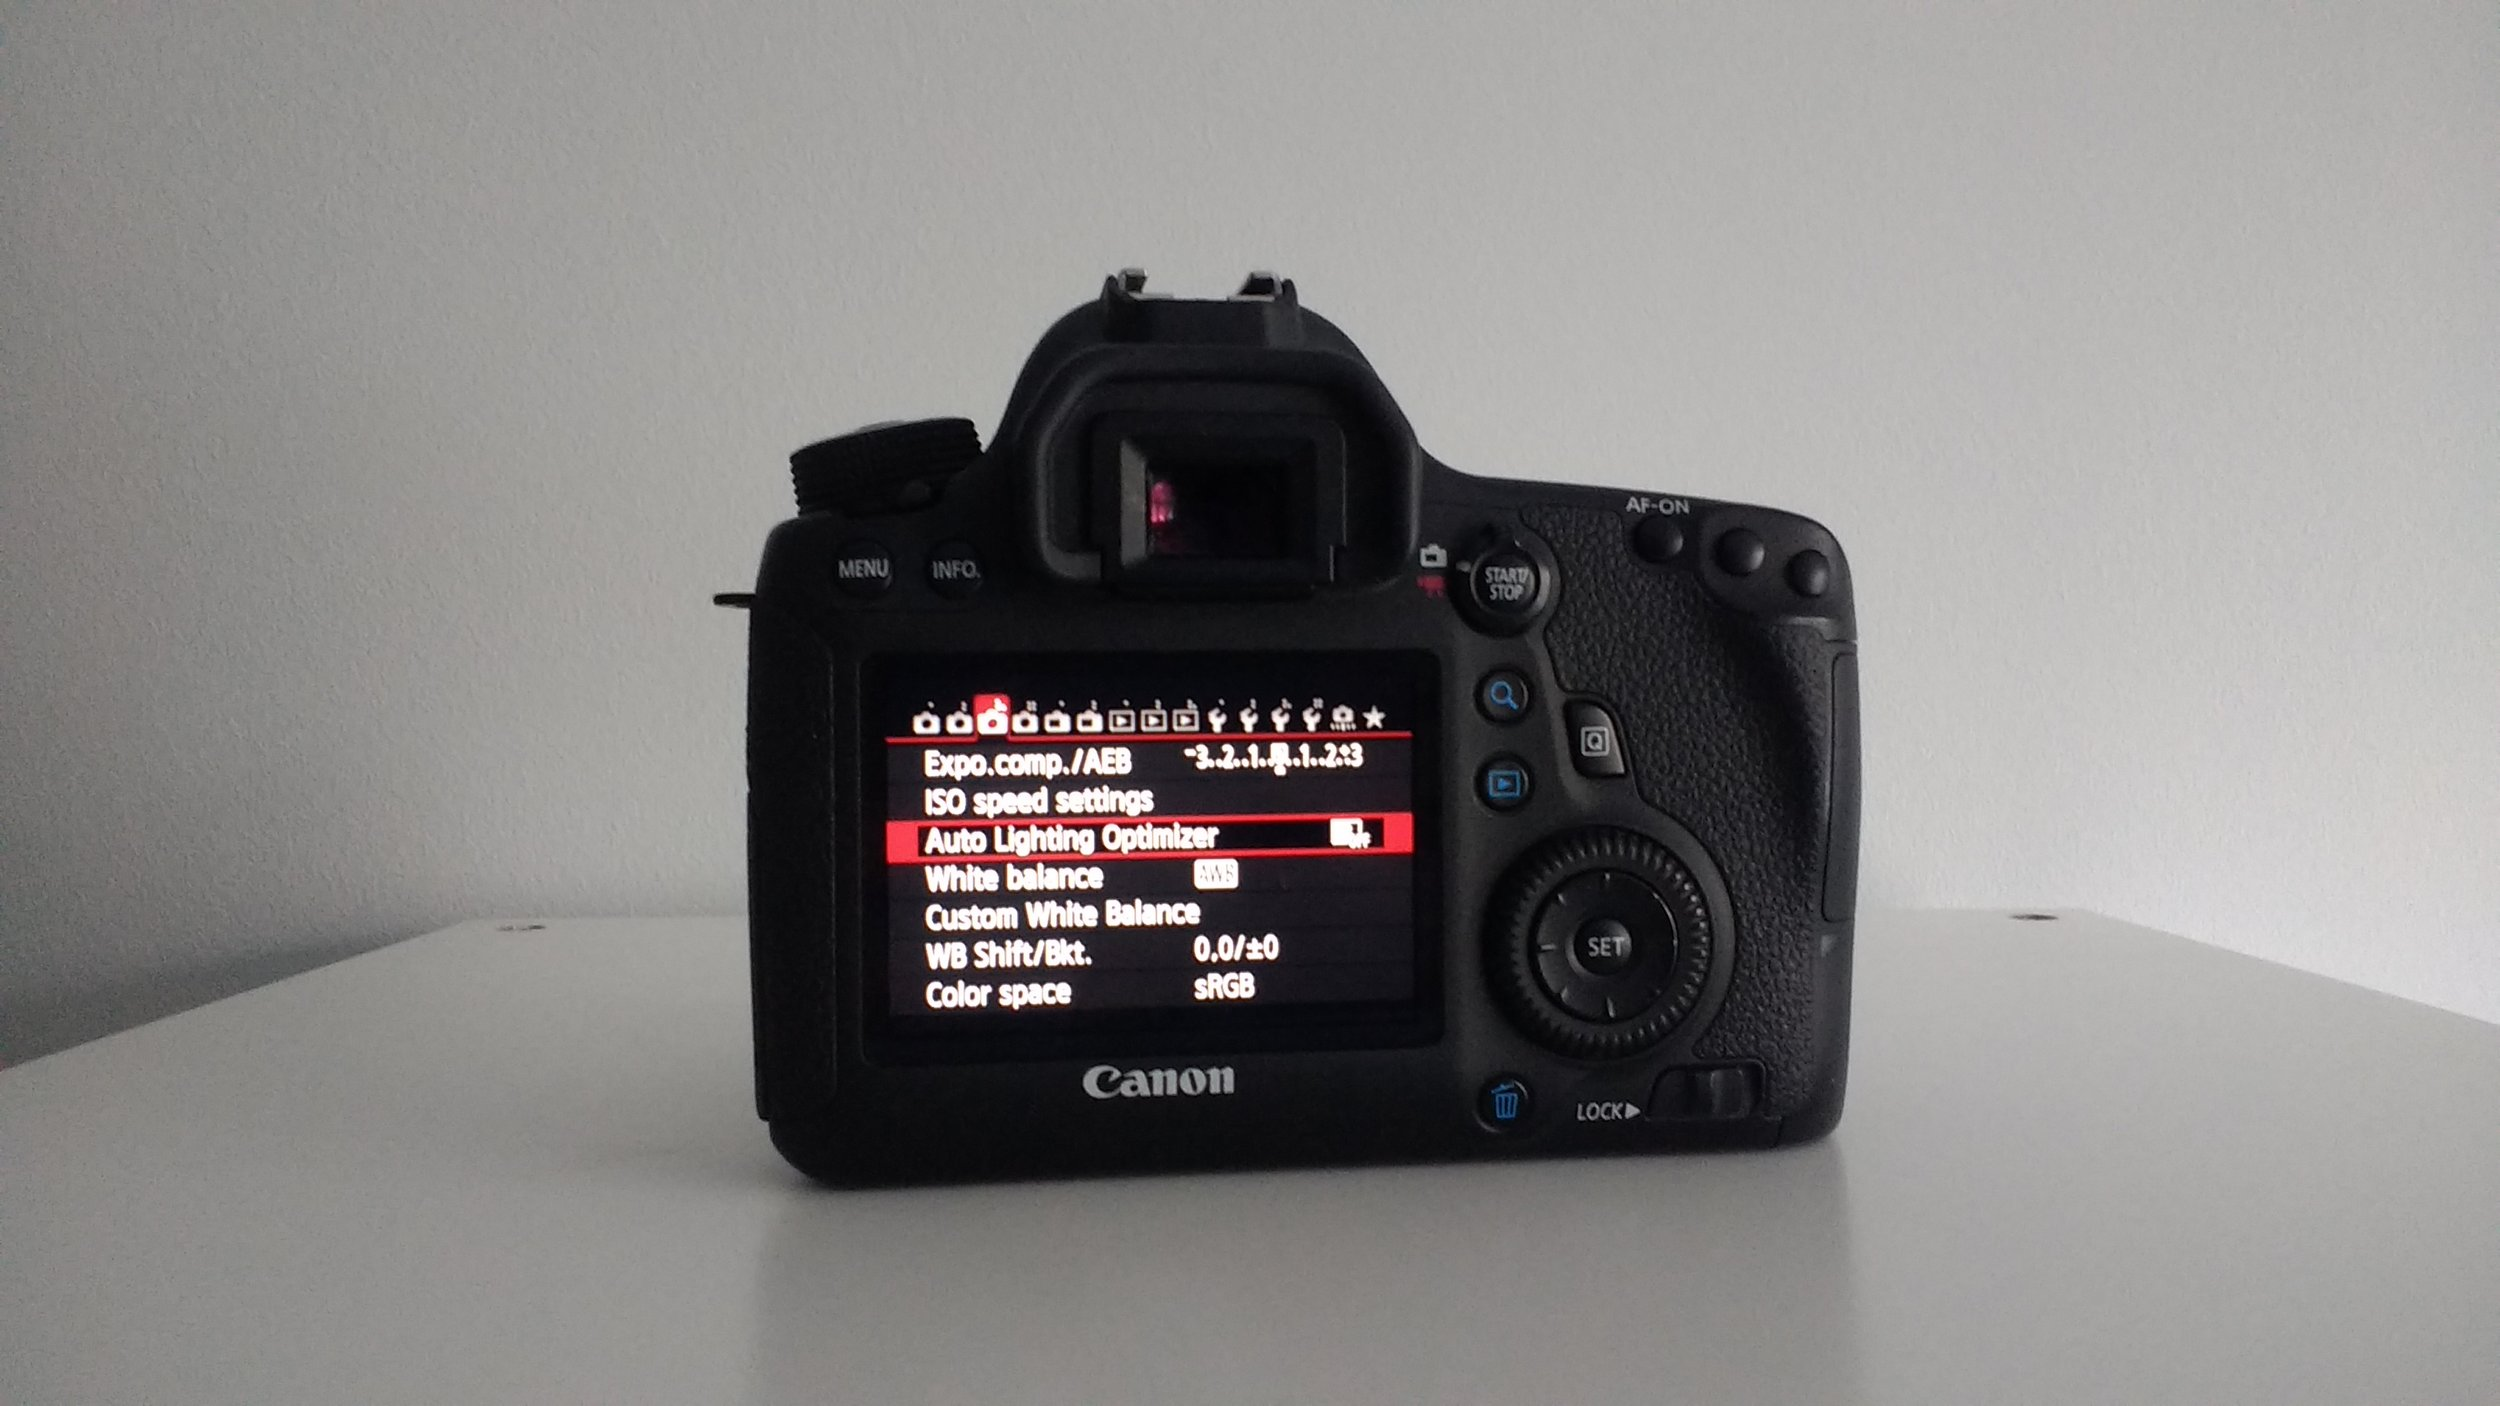 Learn how to use your DSLR - get unfuzzy! {Photography education & Classes in Nantwich, Cheshire.}